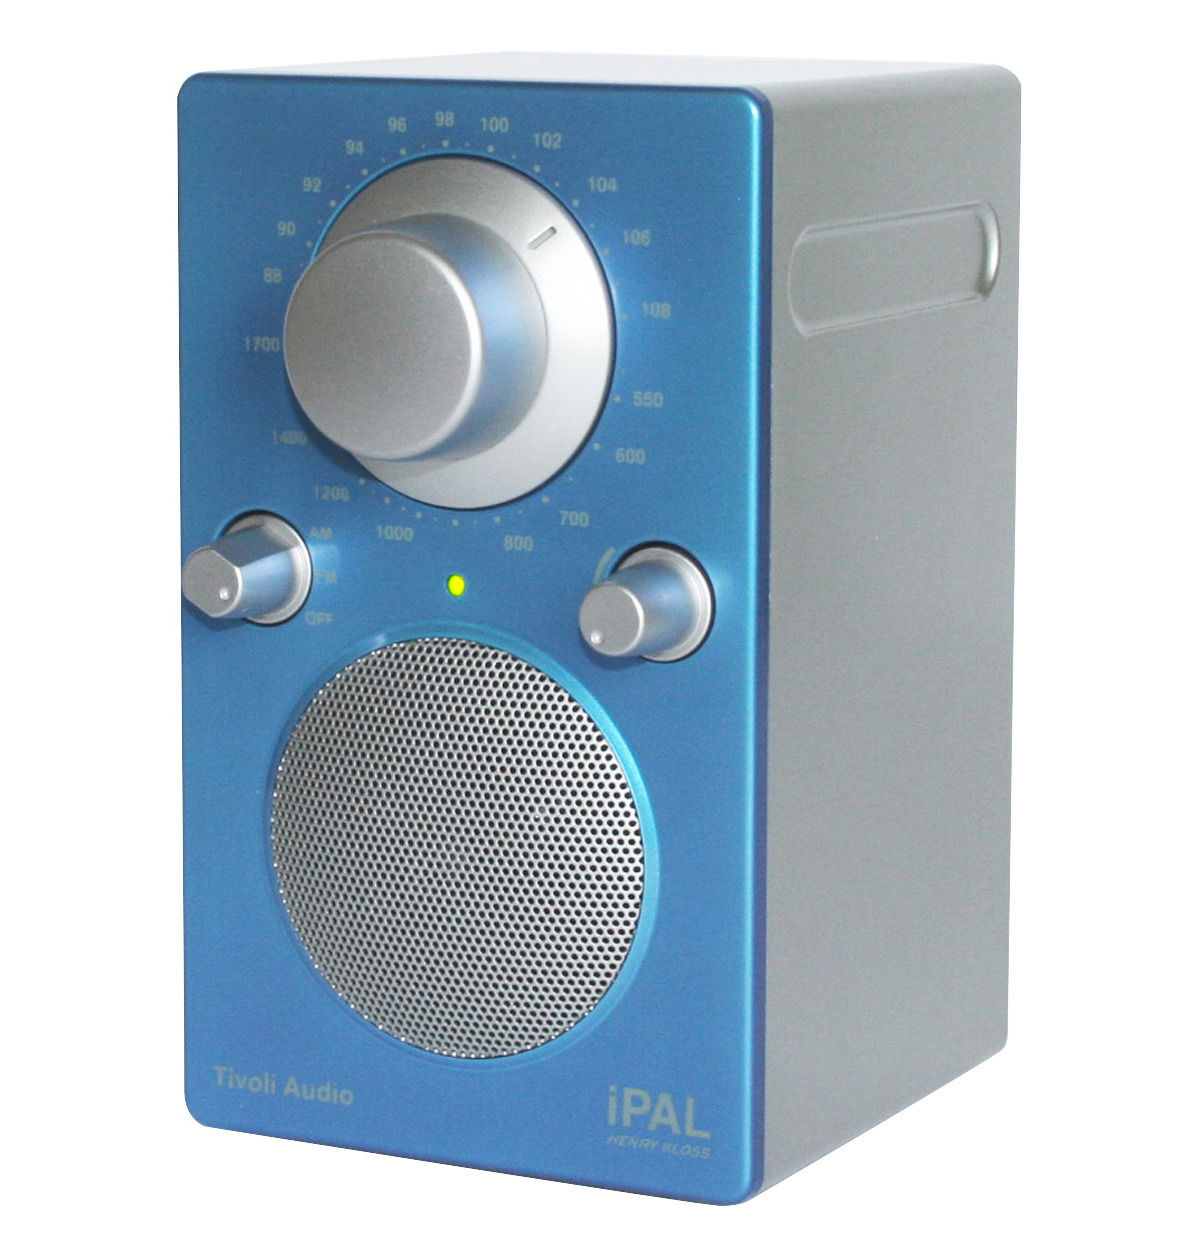 radio ipal enceinte portative compatible ipod bleu tivoli audio. Black Bedroom Furniture Sets. Home Design Ideas